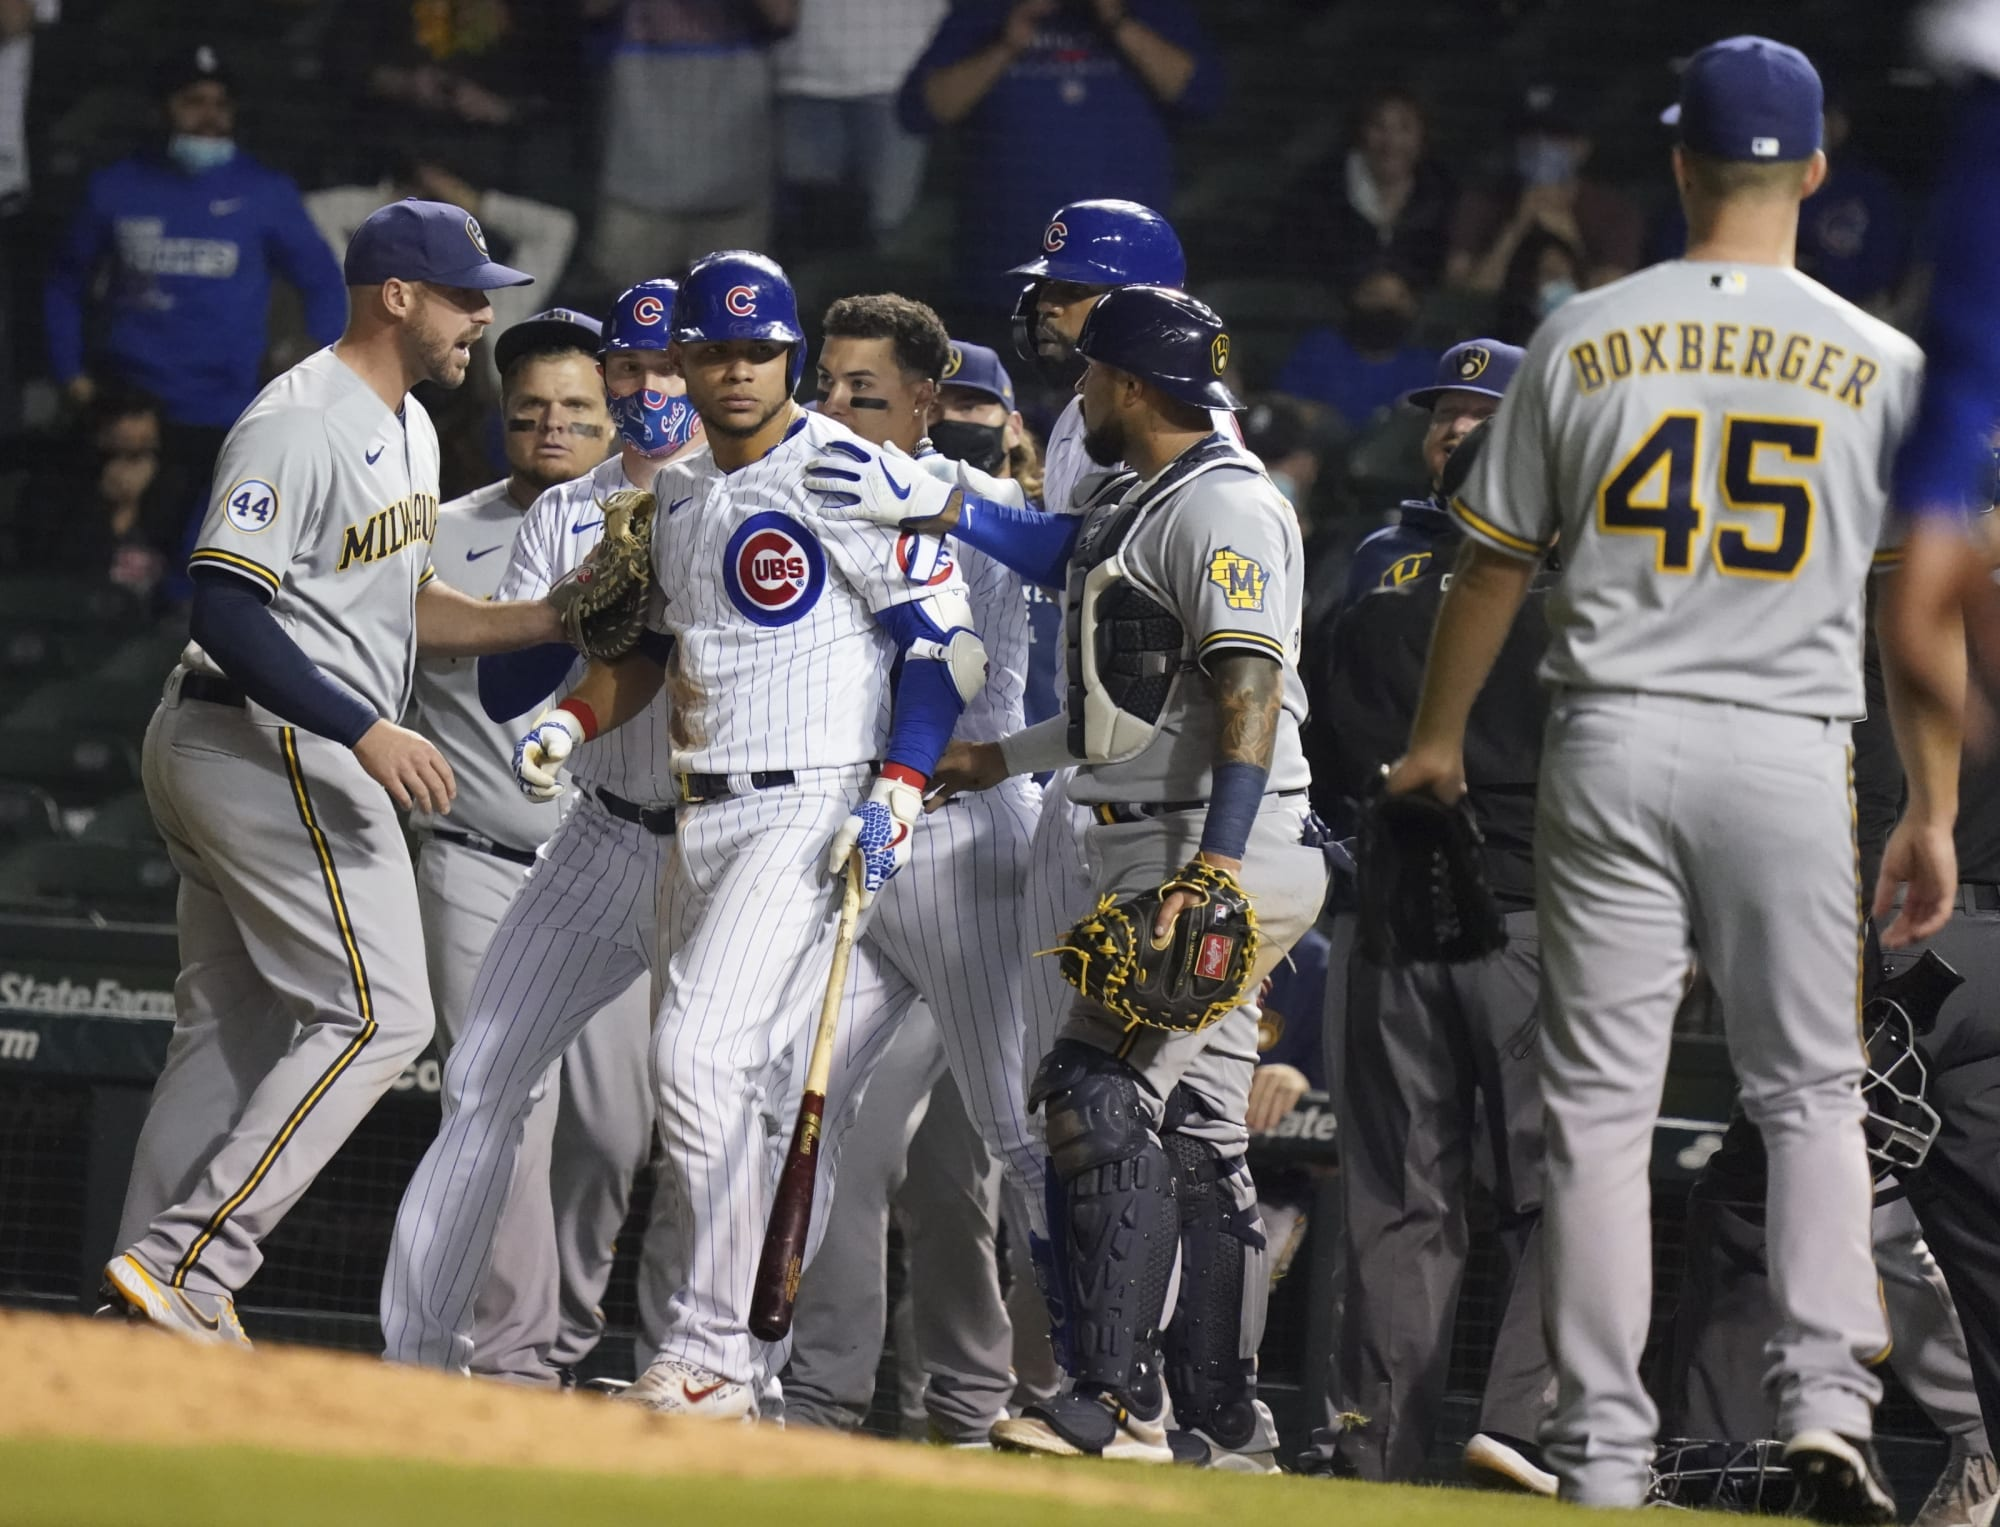 Cubs restart benches-clearing Willson Contreras drama by throwing behind Brandon Woodruff (Video)